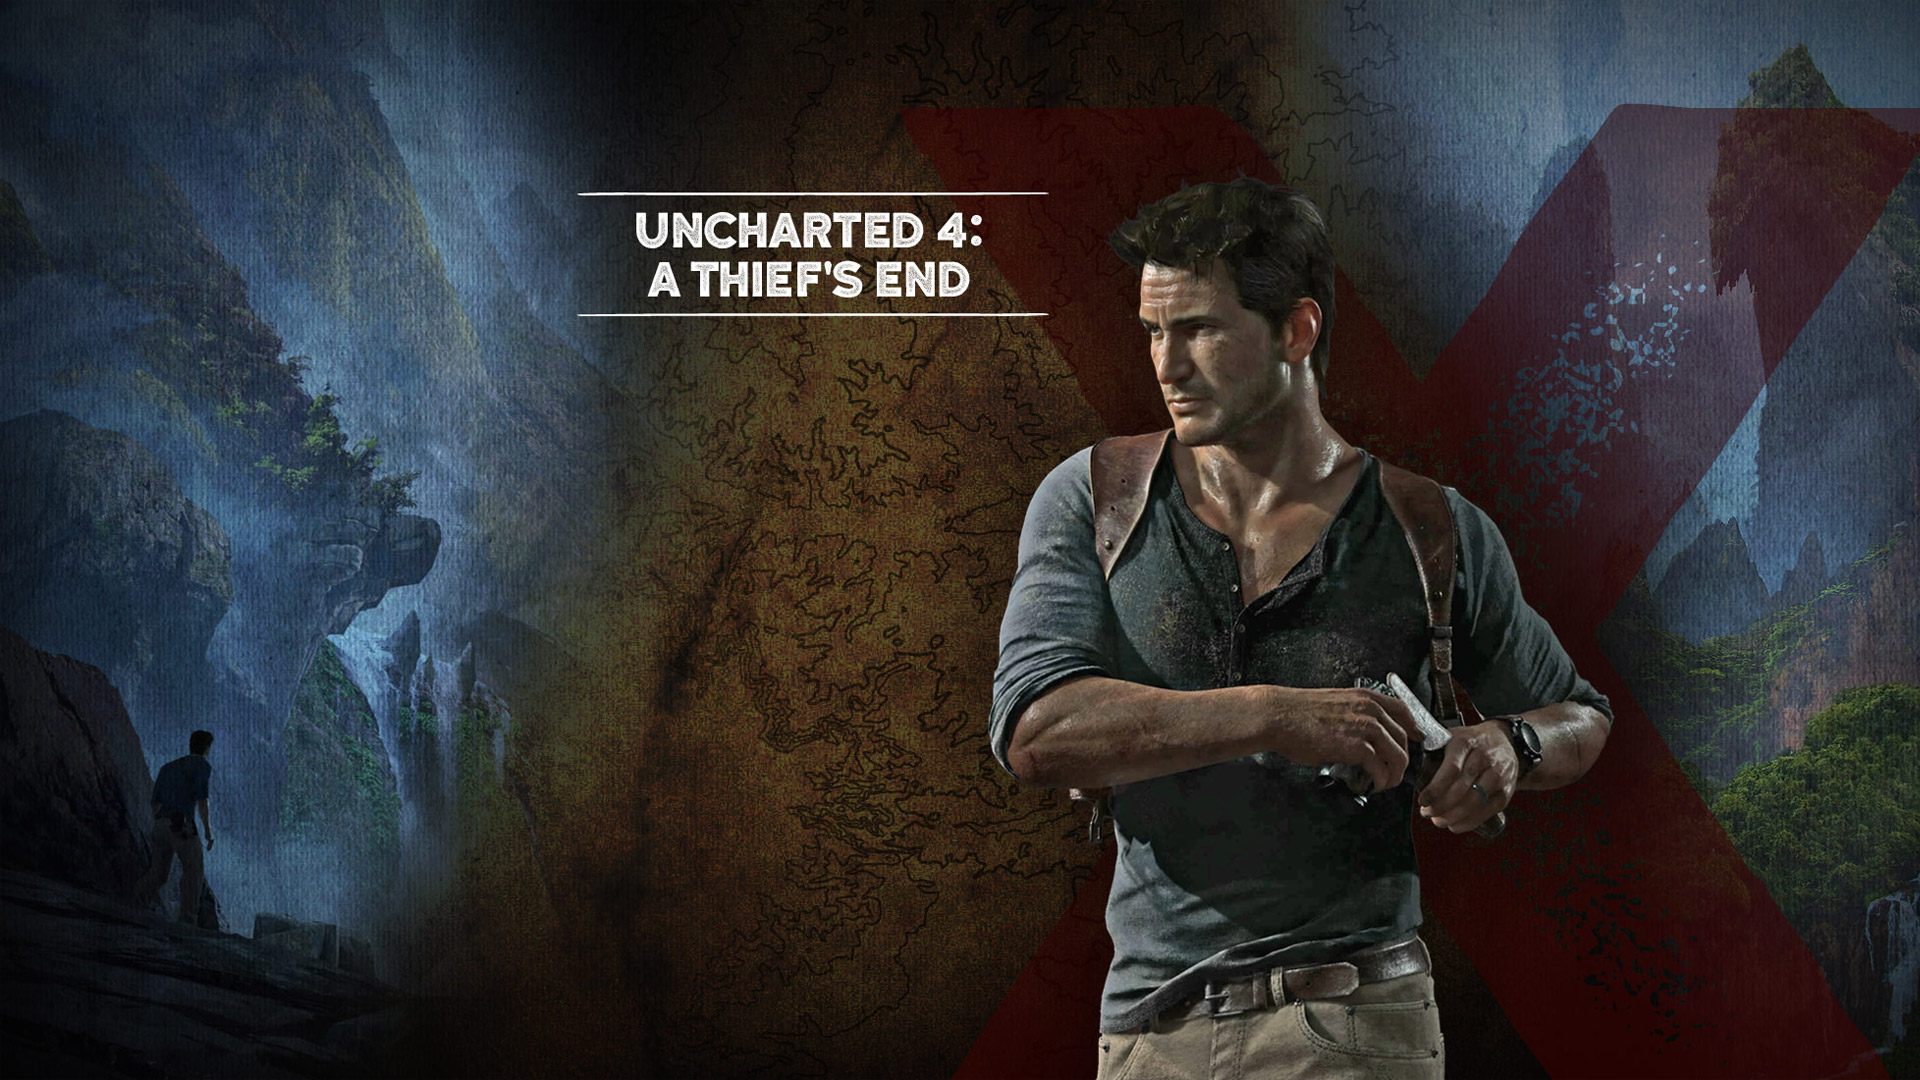 Uncharted Iphone Wallpaper Uncharted 4 A Thief End Hd Wallpapers All Hd Wallpapers